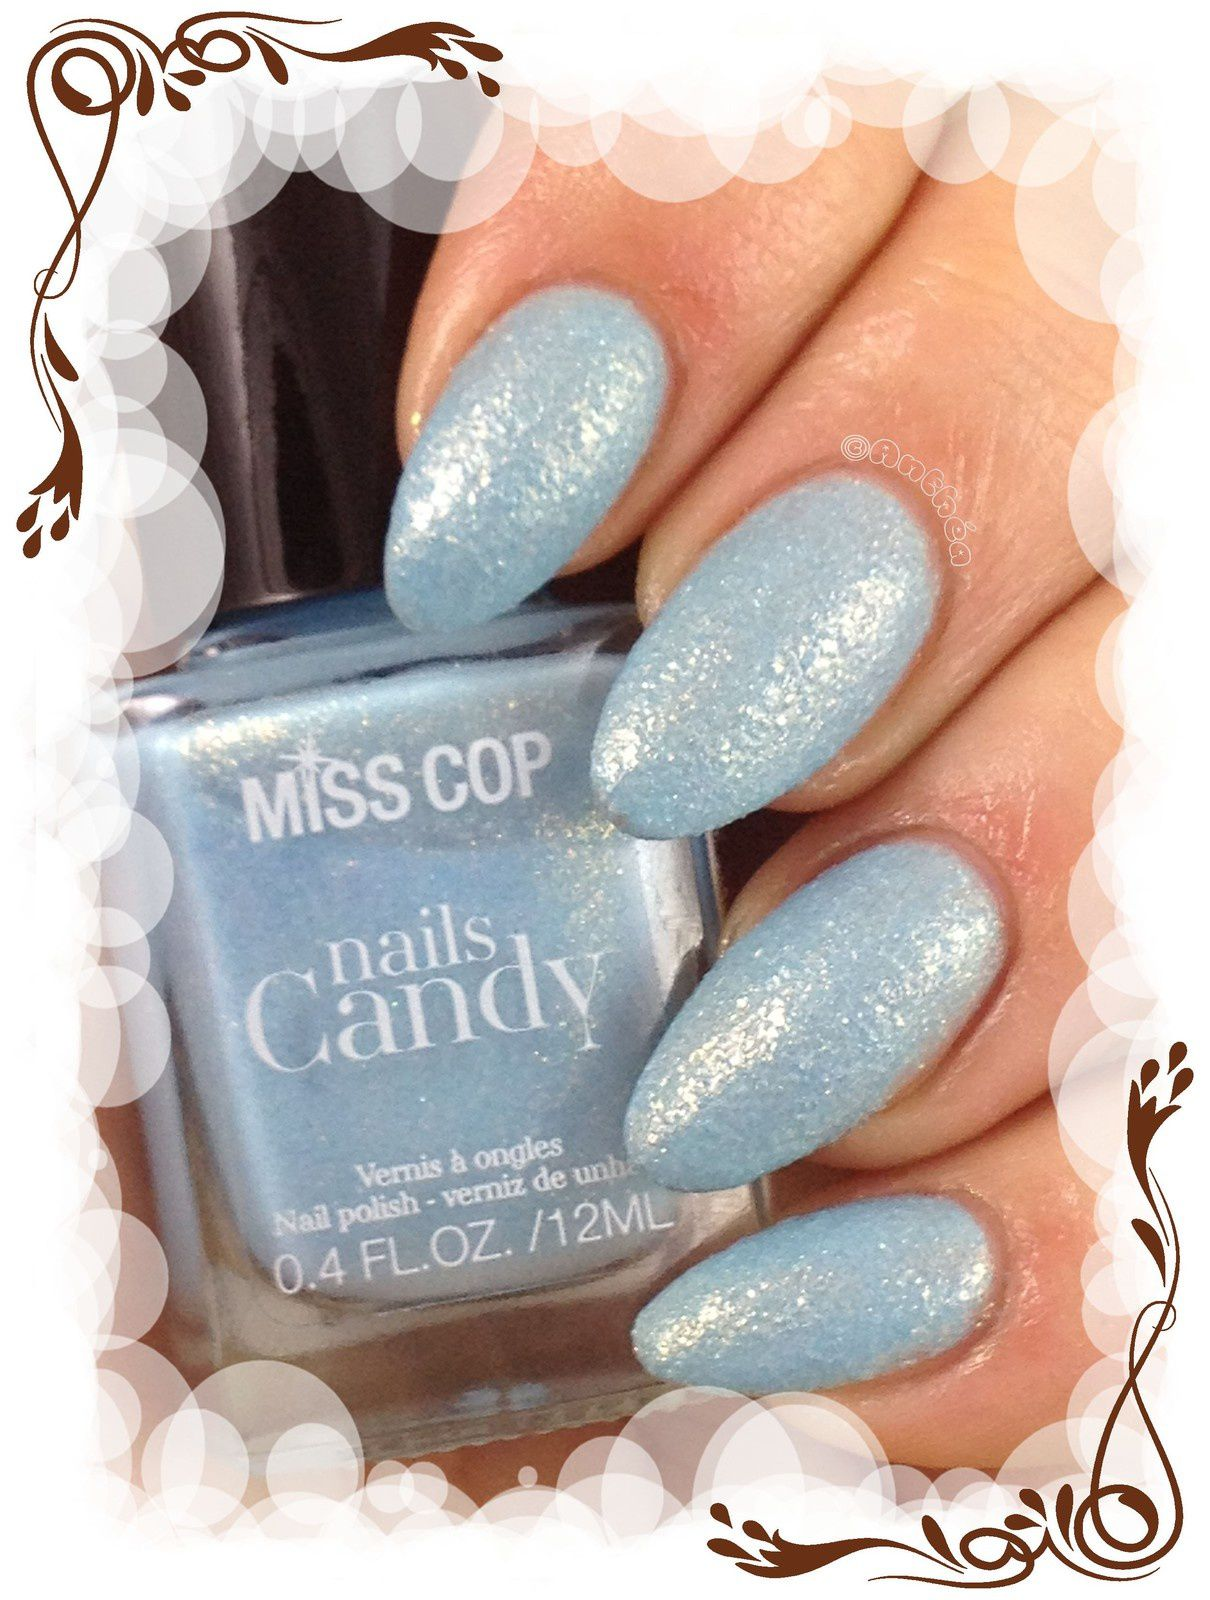 Candy nails n°02 Kiss mint by Miss cop